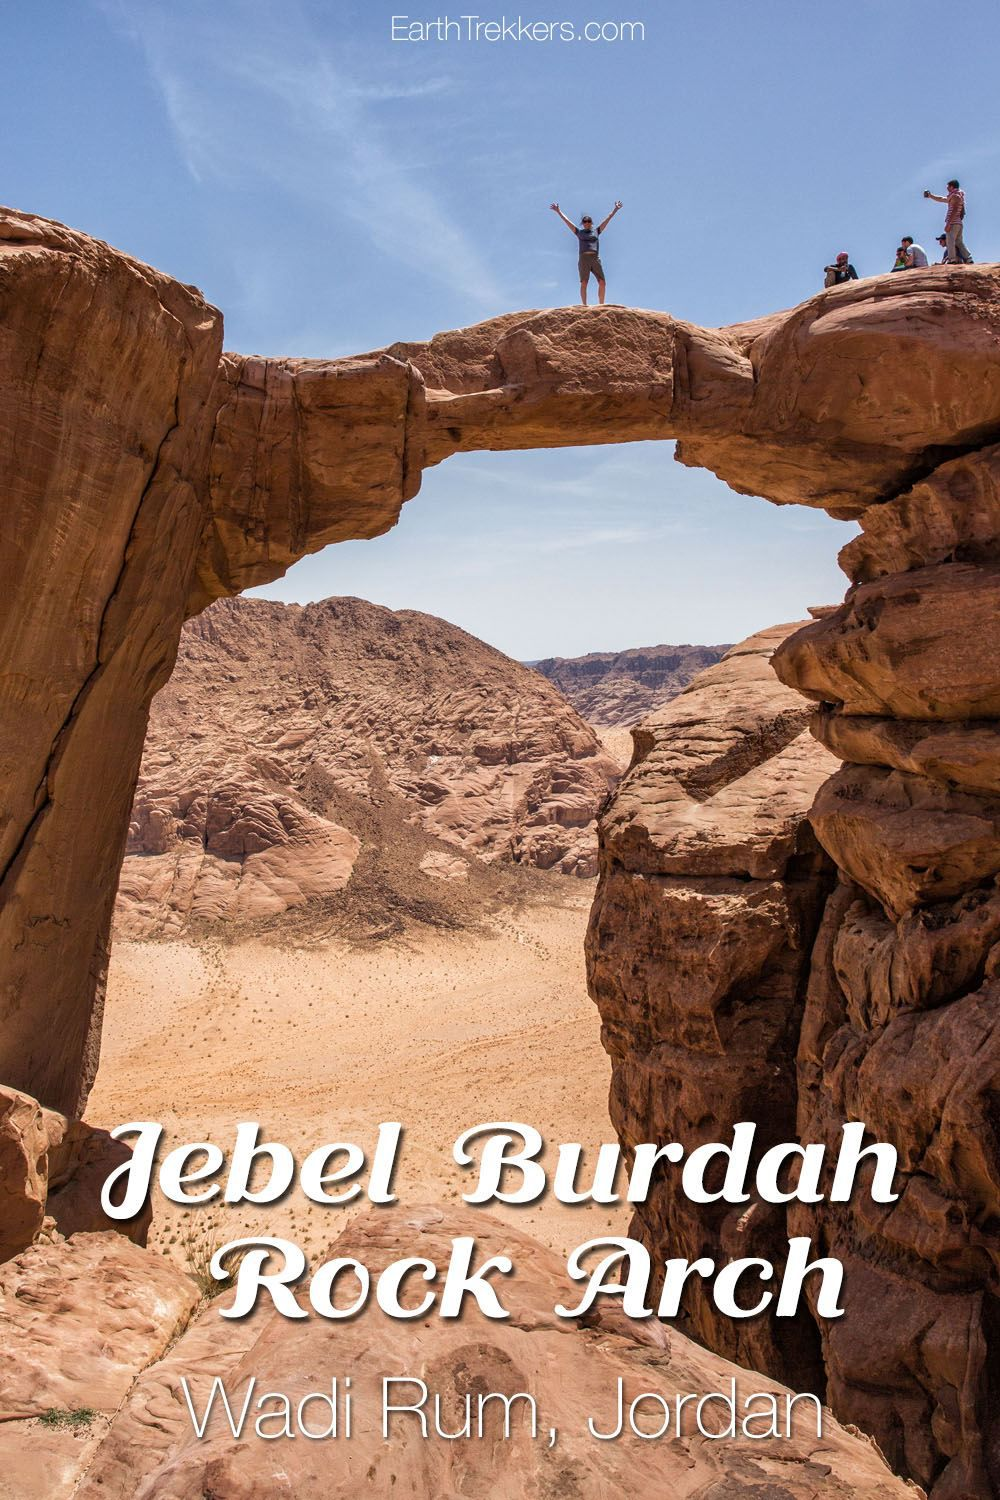 Jebel Burdah Rock Bridge Wadi Rum Jordan